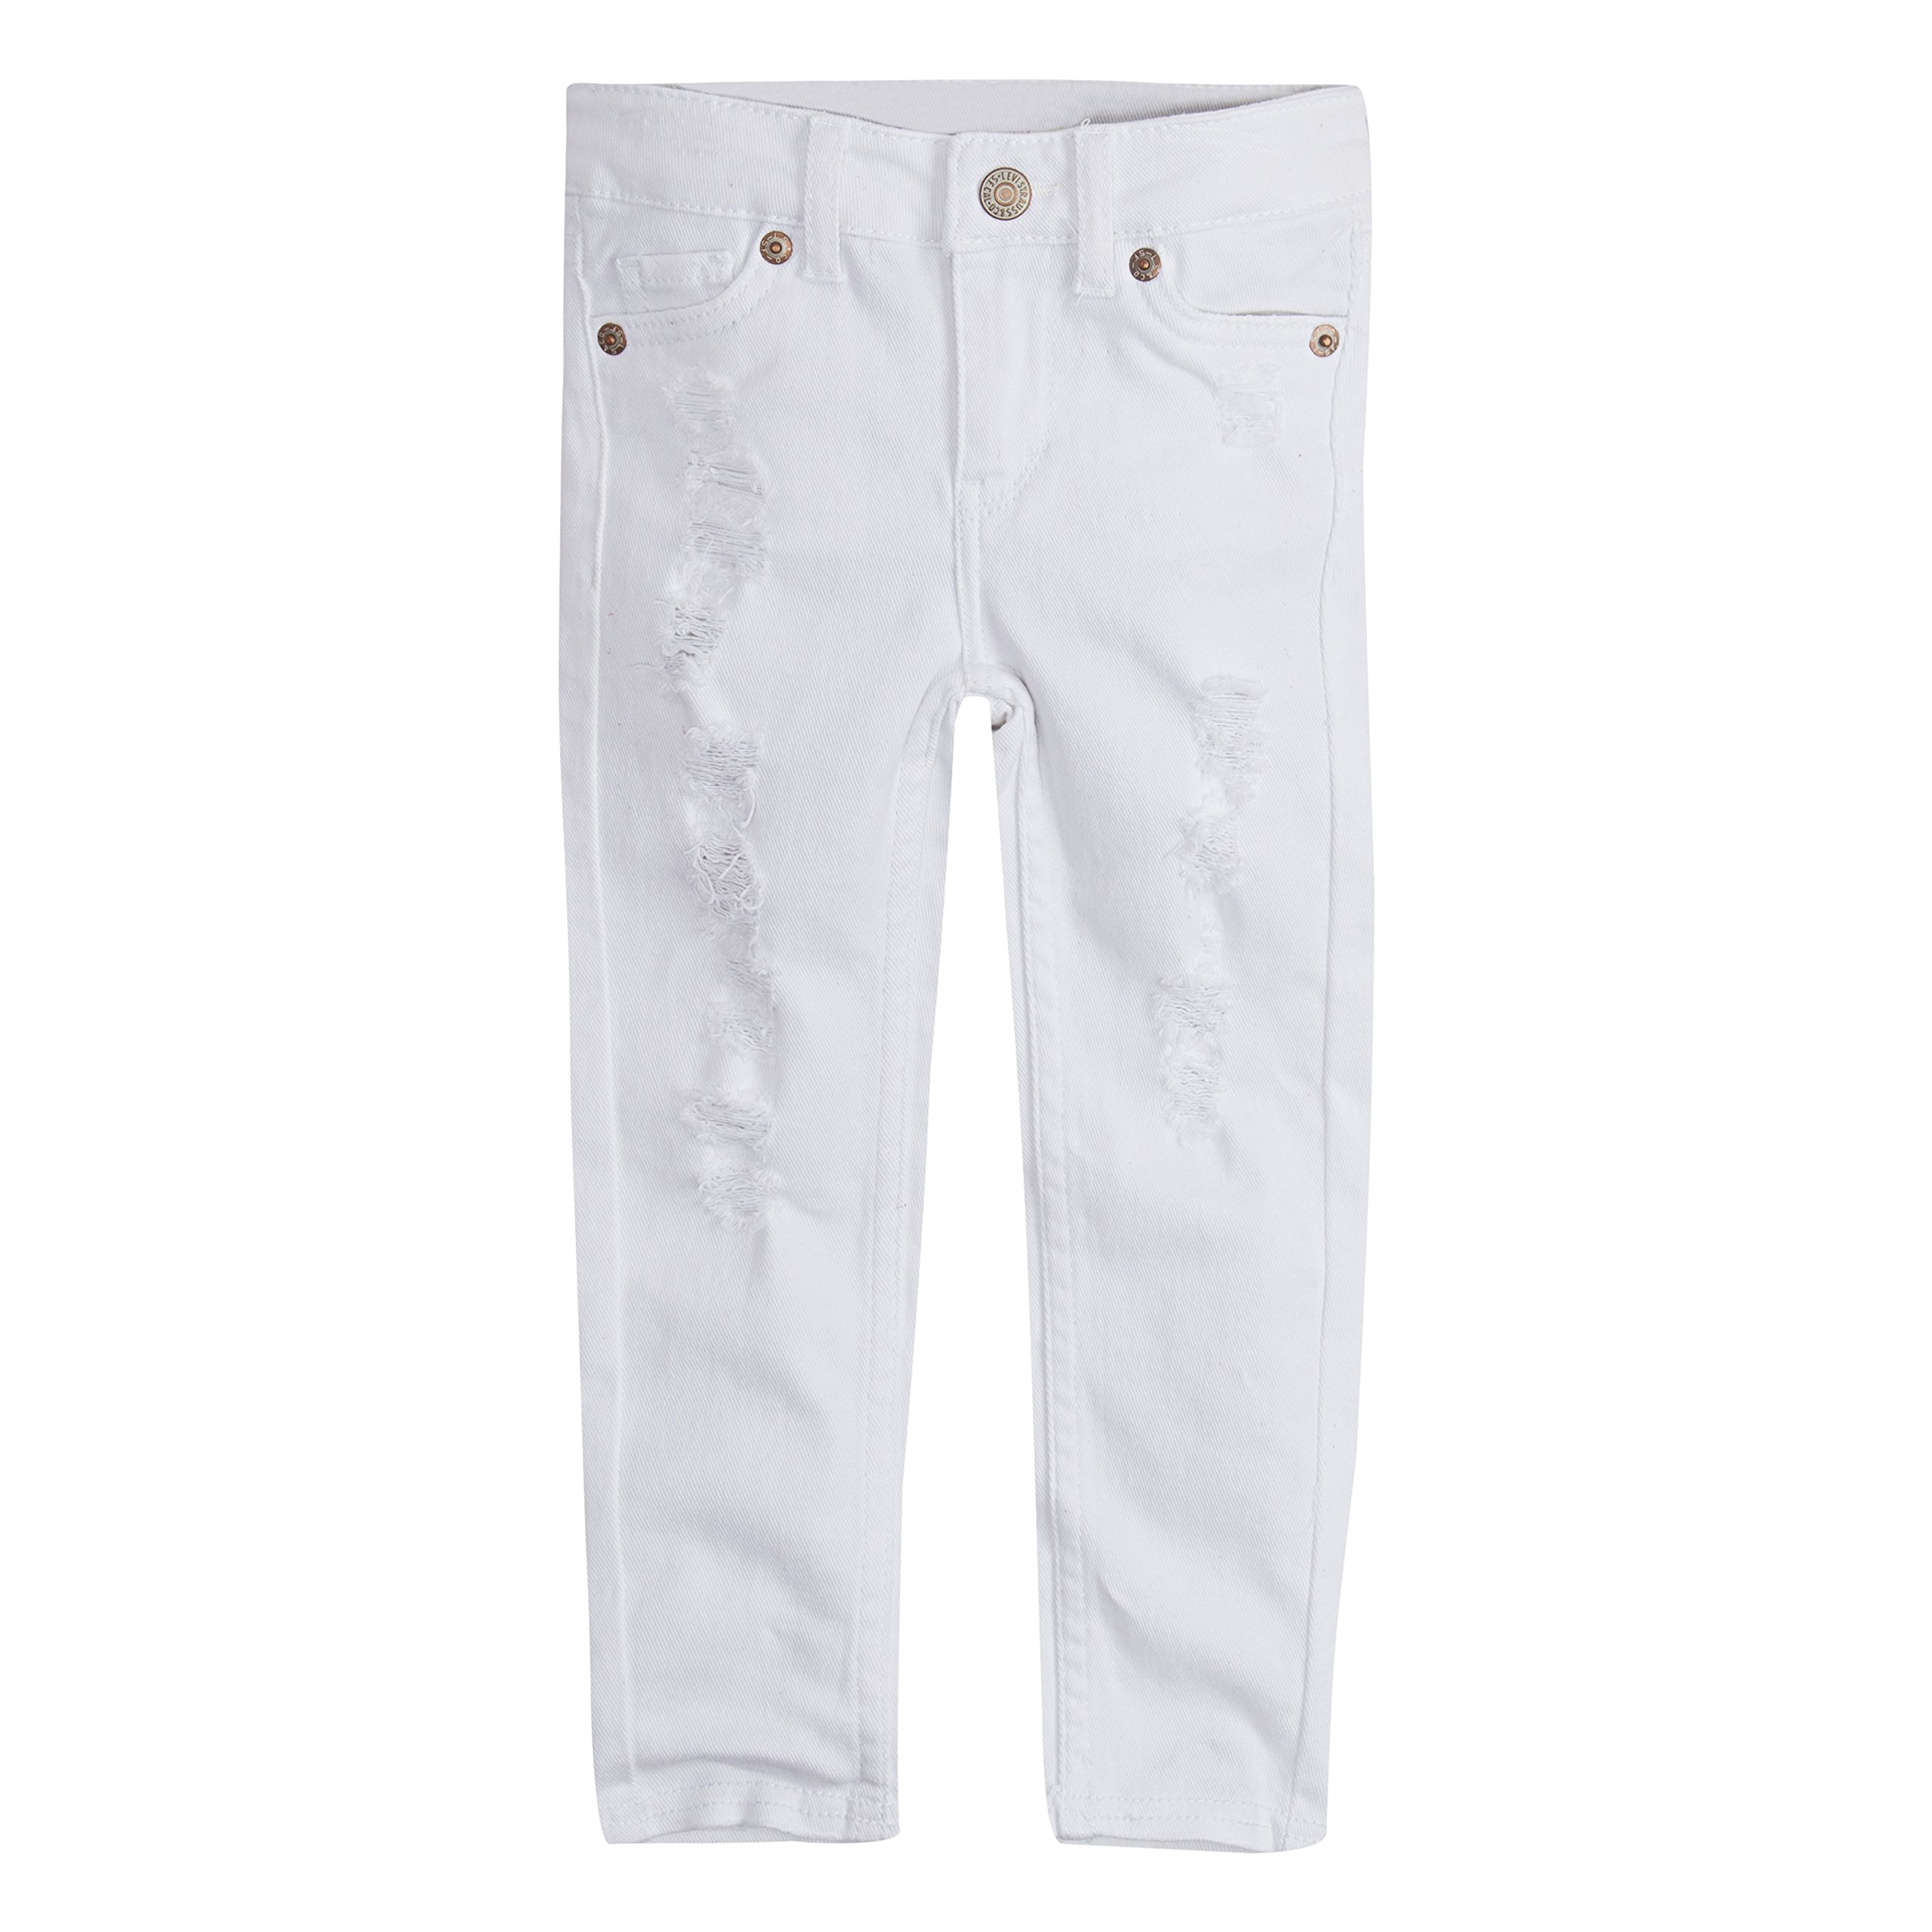 Levi's Girls' Little 710 Skinny Fit Jeans, White, 6X